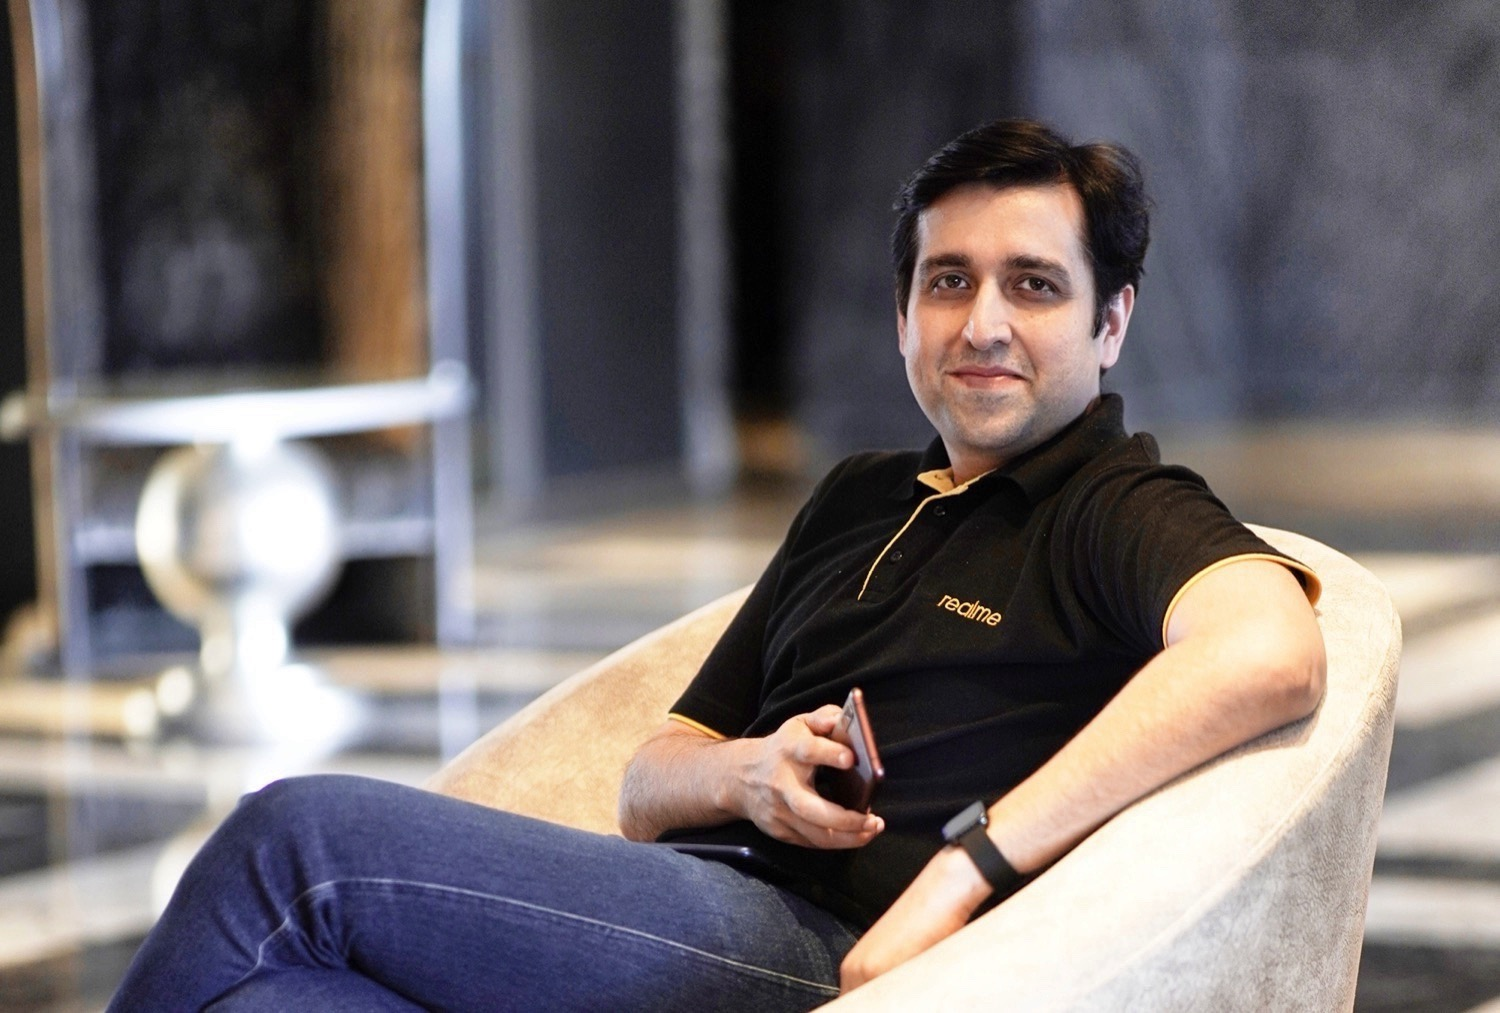 Interview with Madhav Sheth: CEO of Realme comments on 2 MP cameras for smartphones, box chargers and more